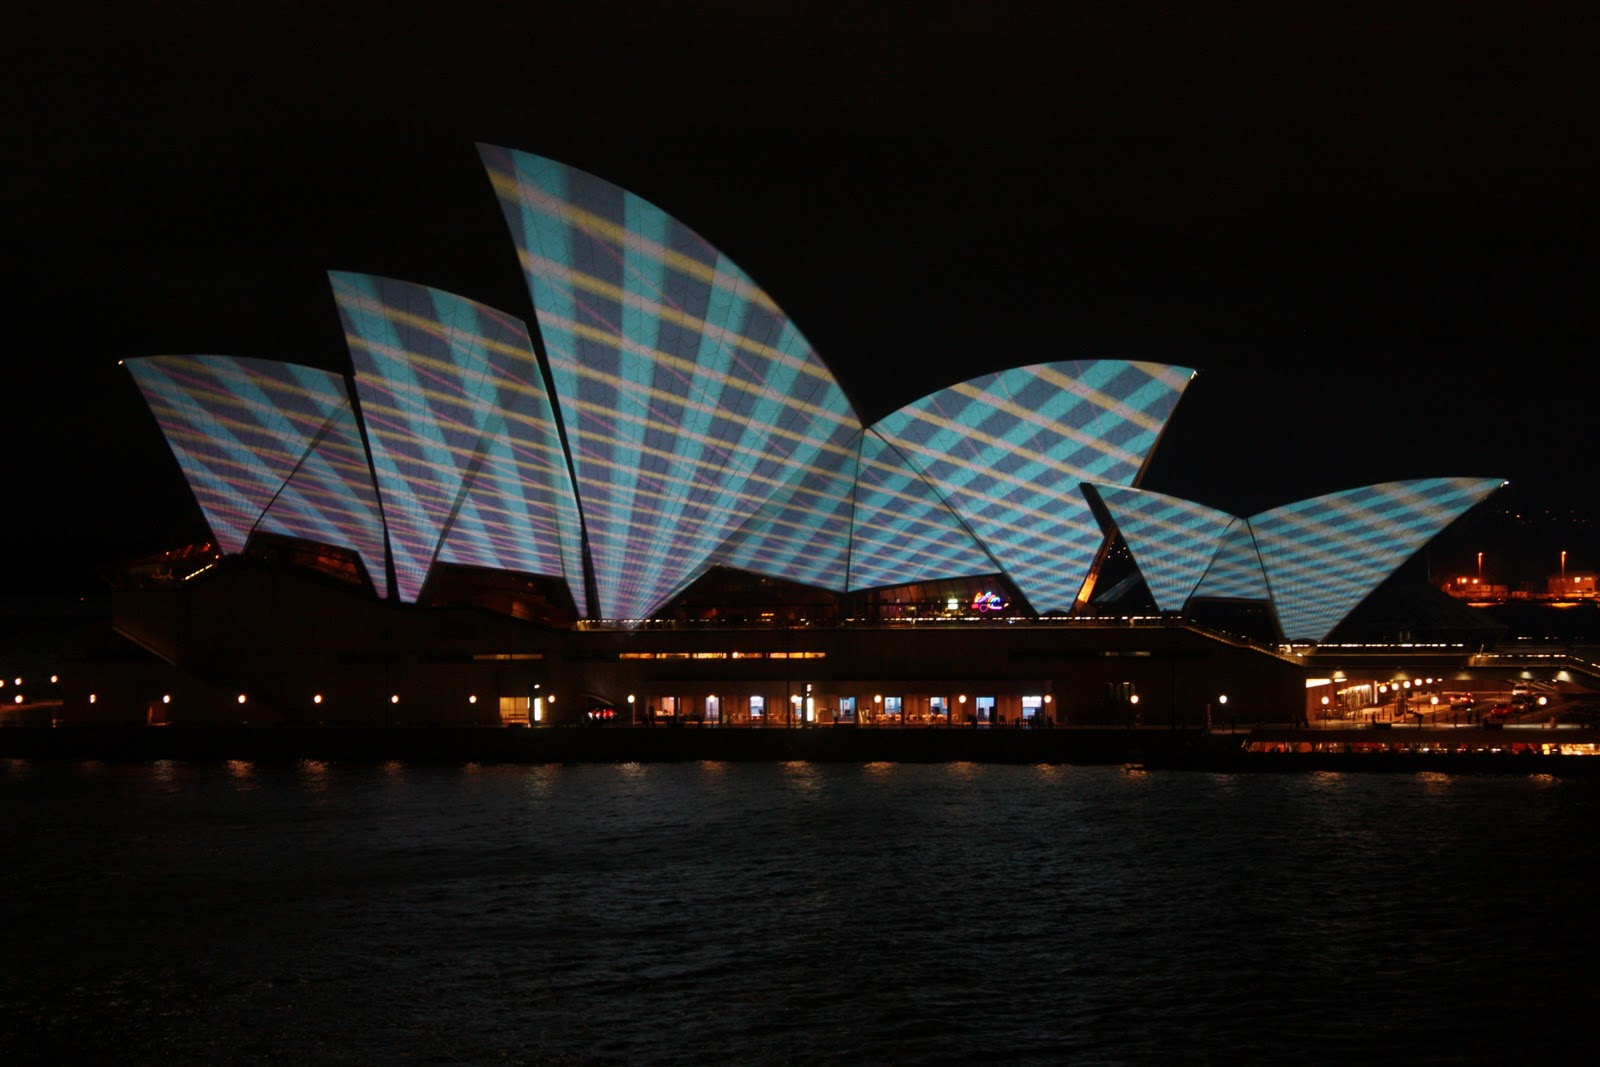 sydney opera project The project host's scathing take went viral after its broadcast on tuesday night sydney opera house everest promotion blasted by the project's waleed aly waleed aly blasts alan jones and.